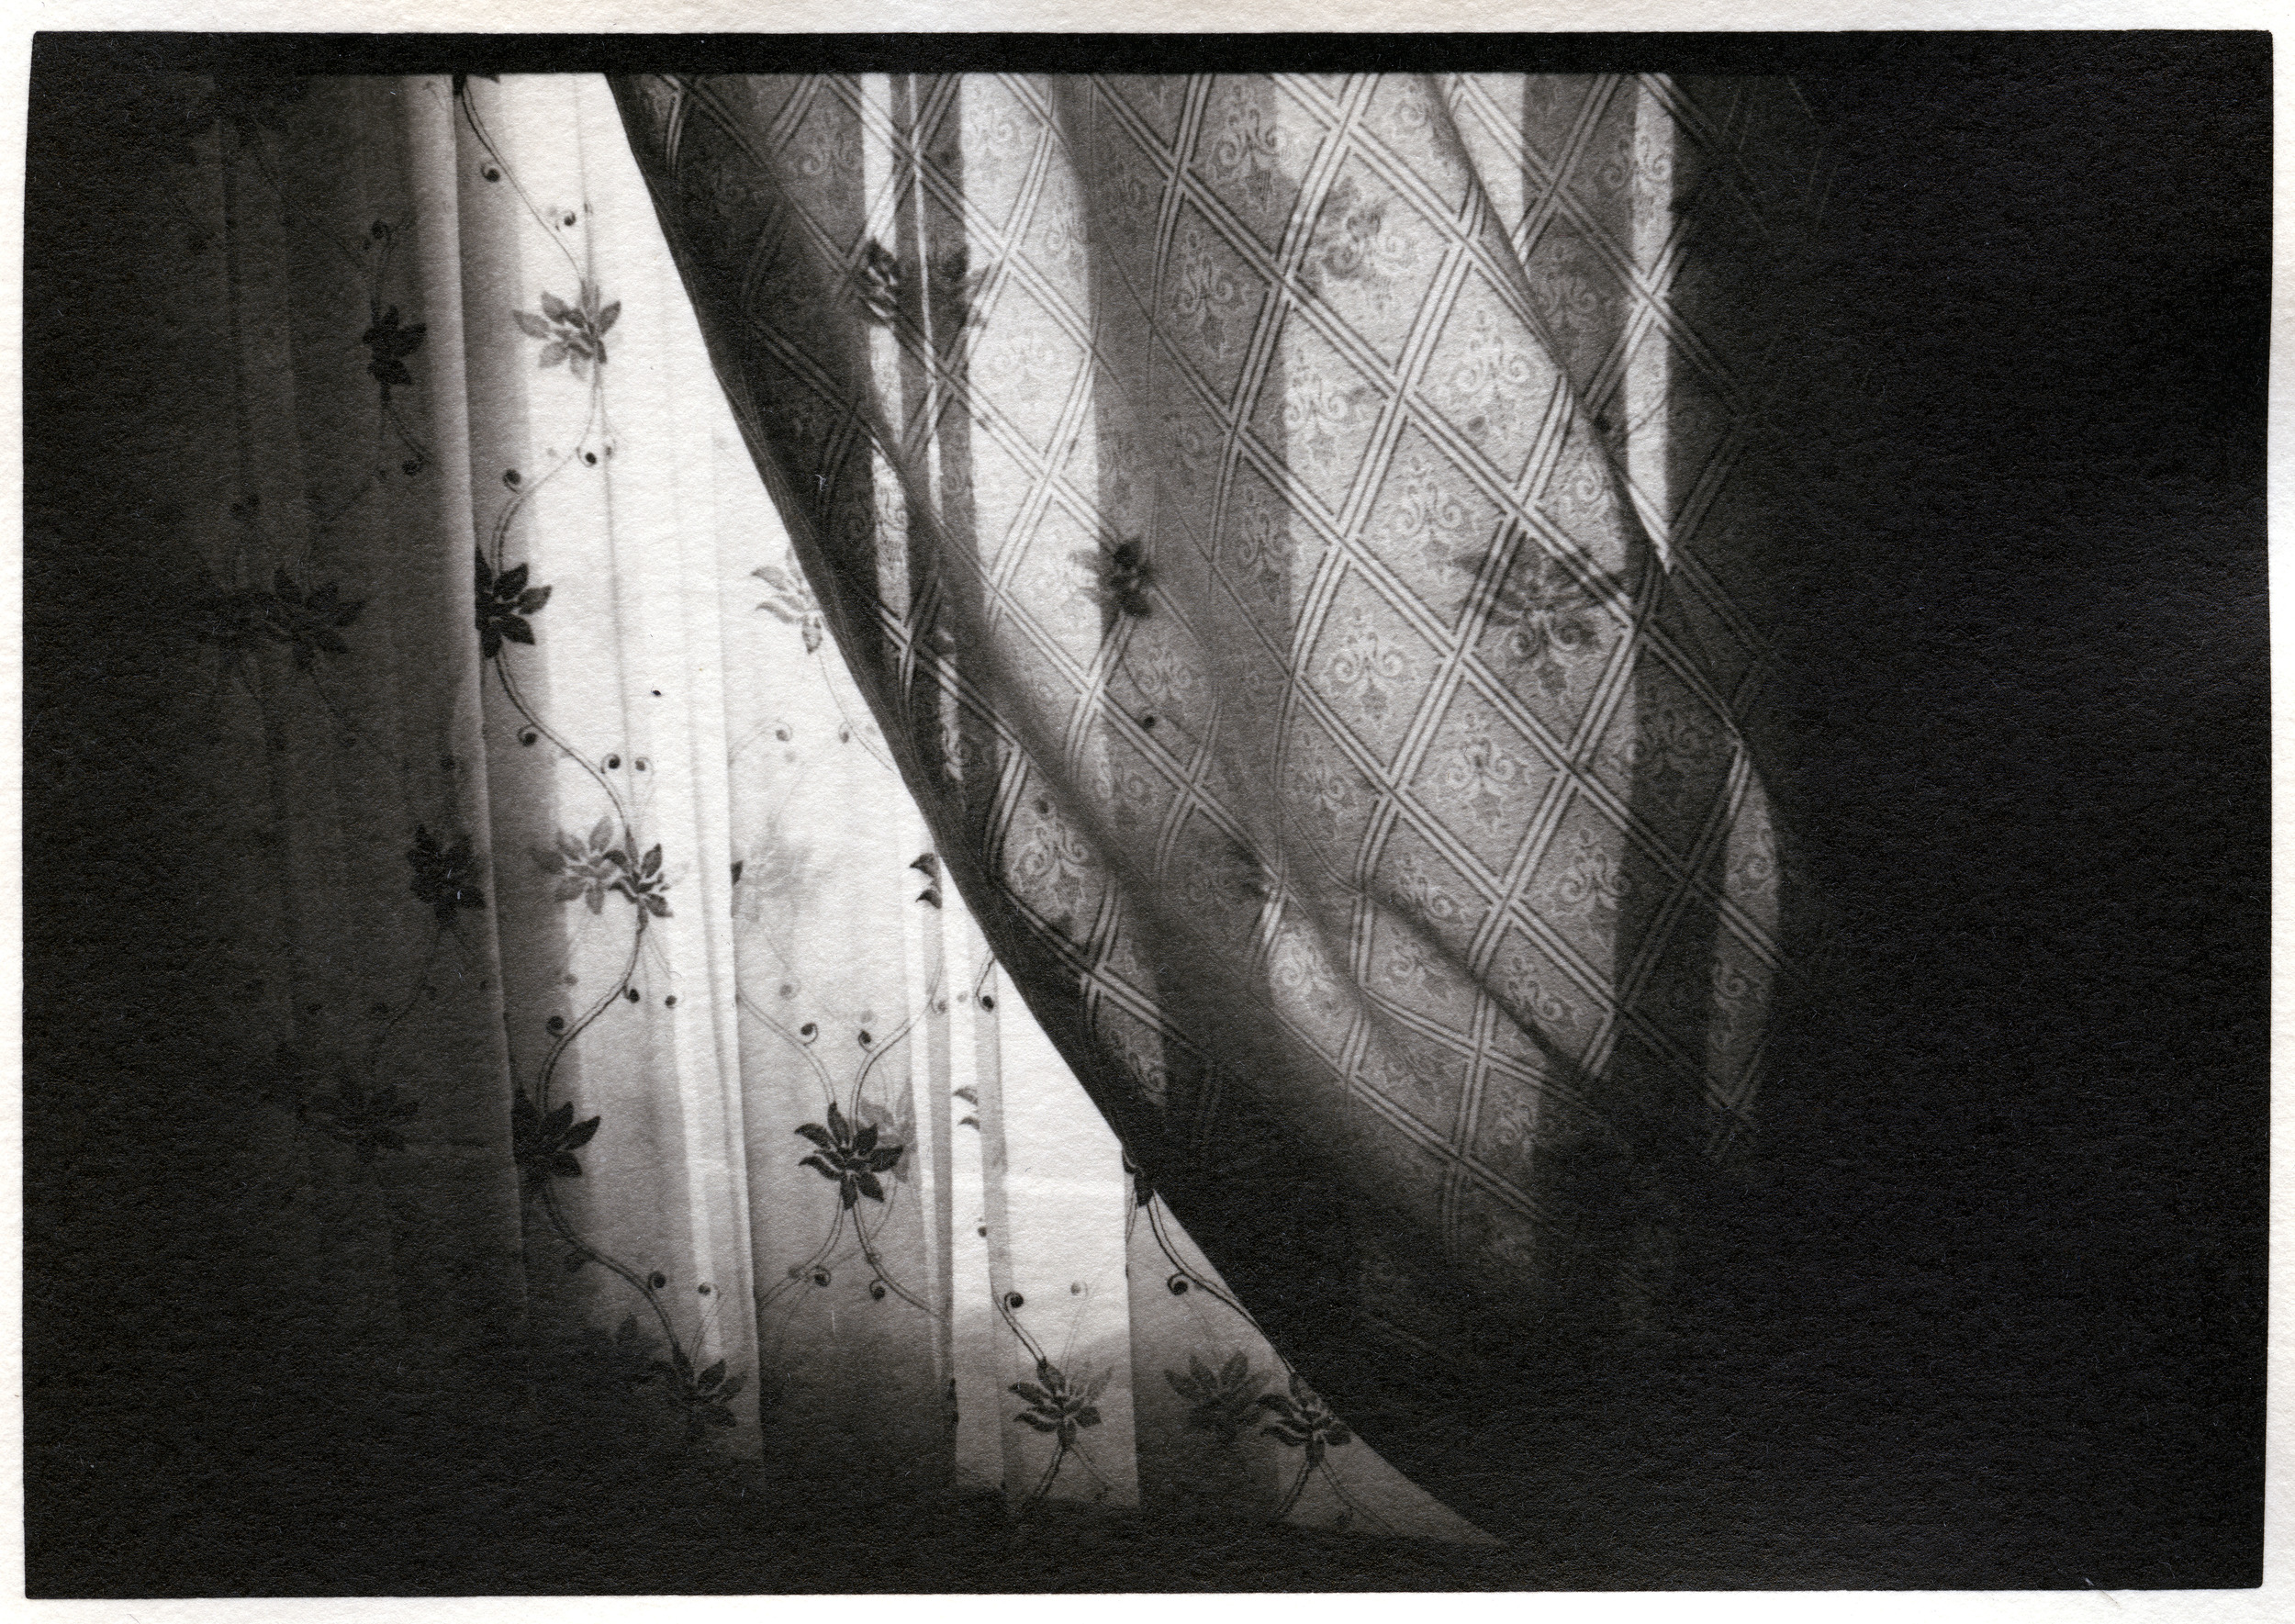 Curtains     Silver Gelatin Print, Switzerland, 2014